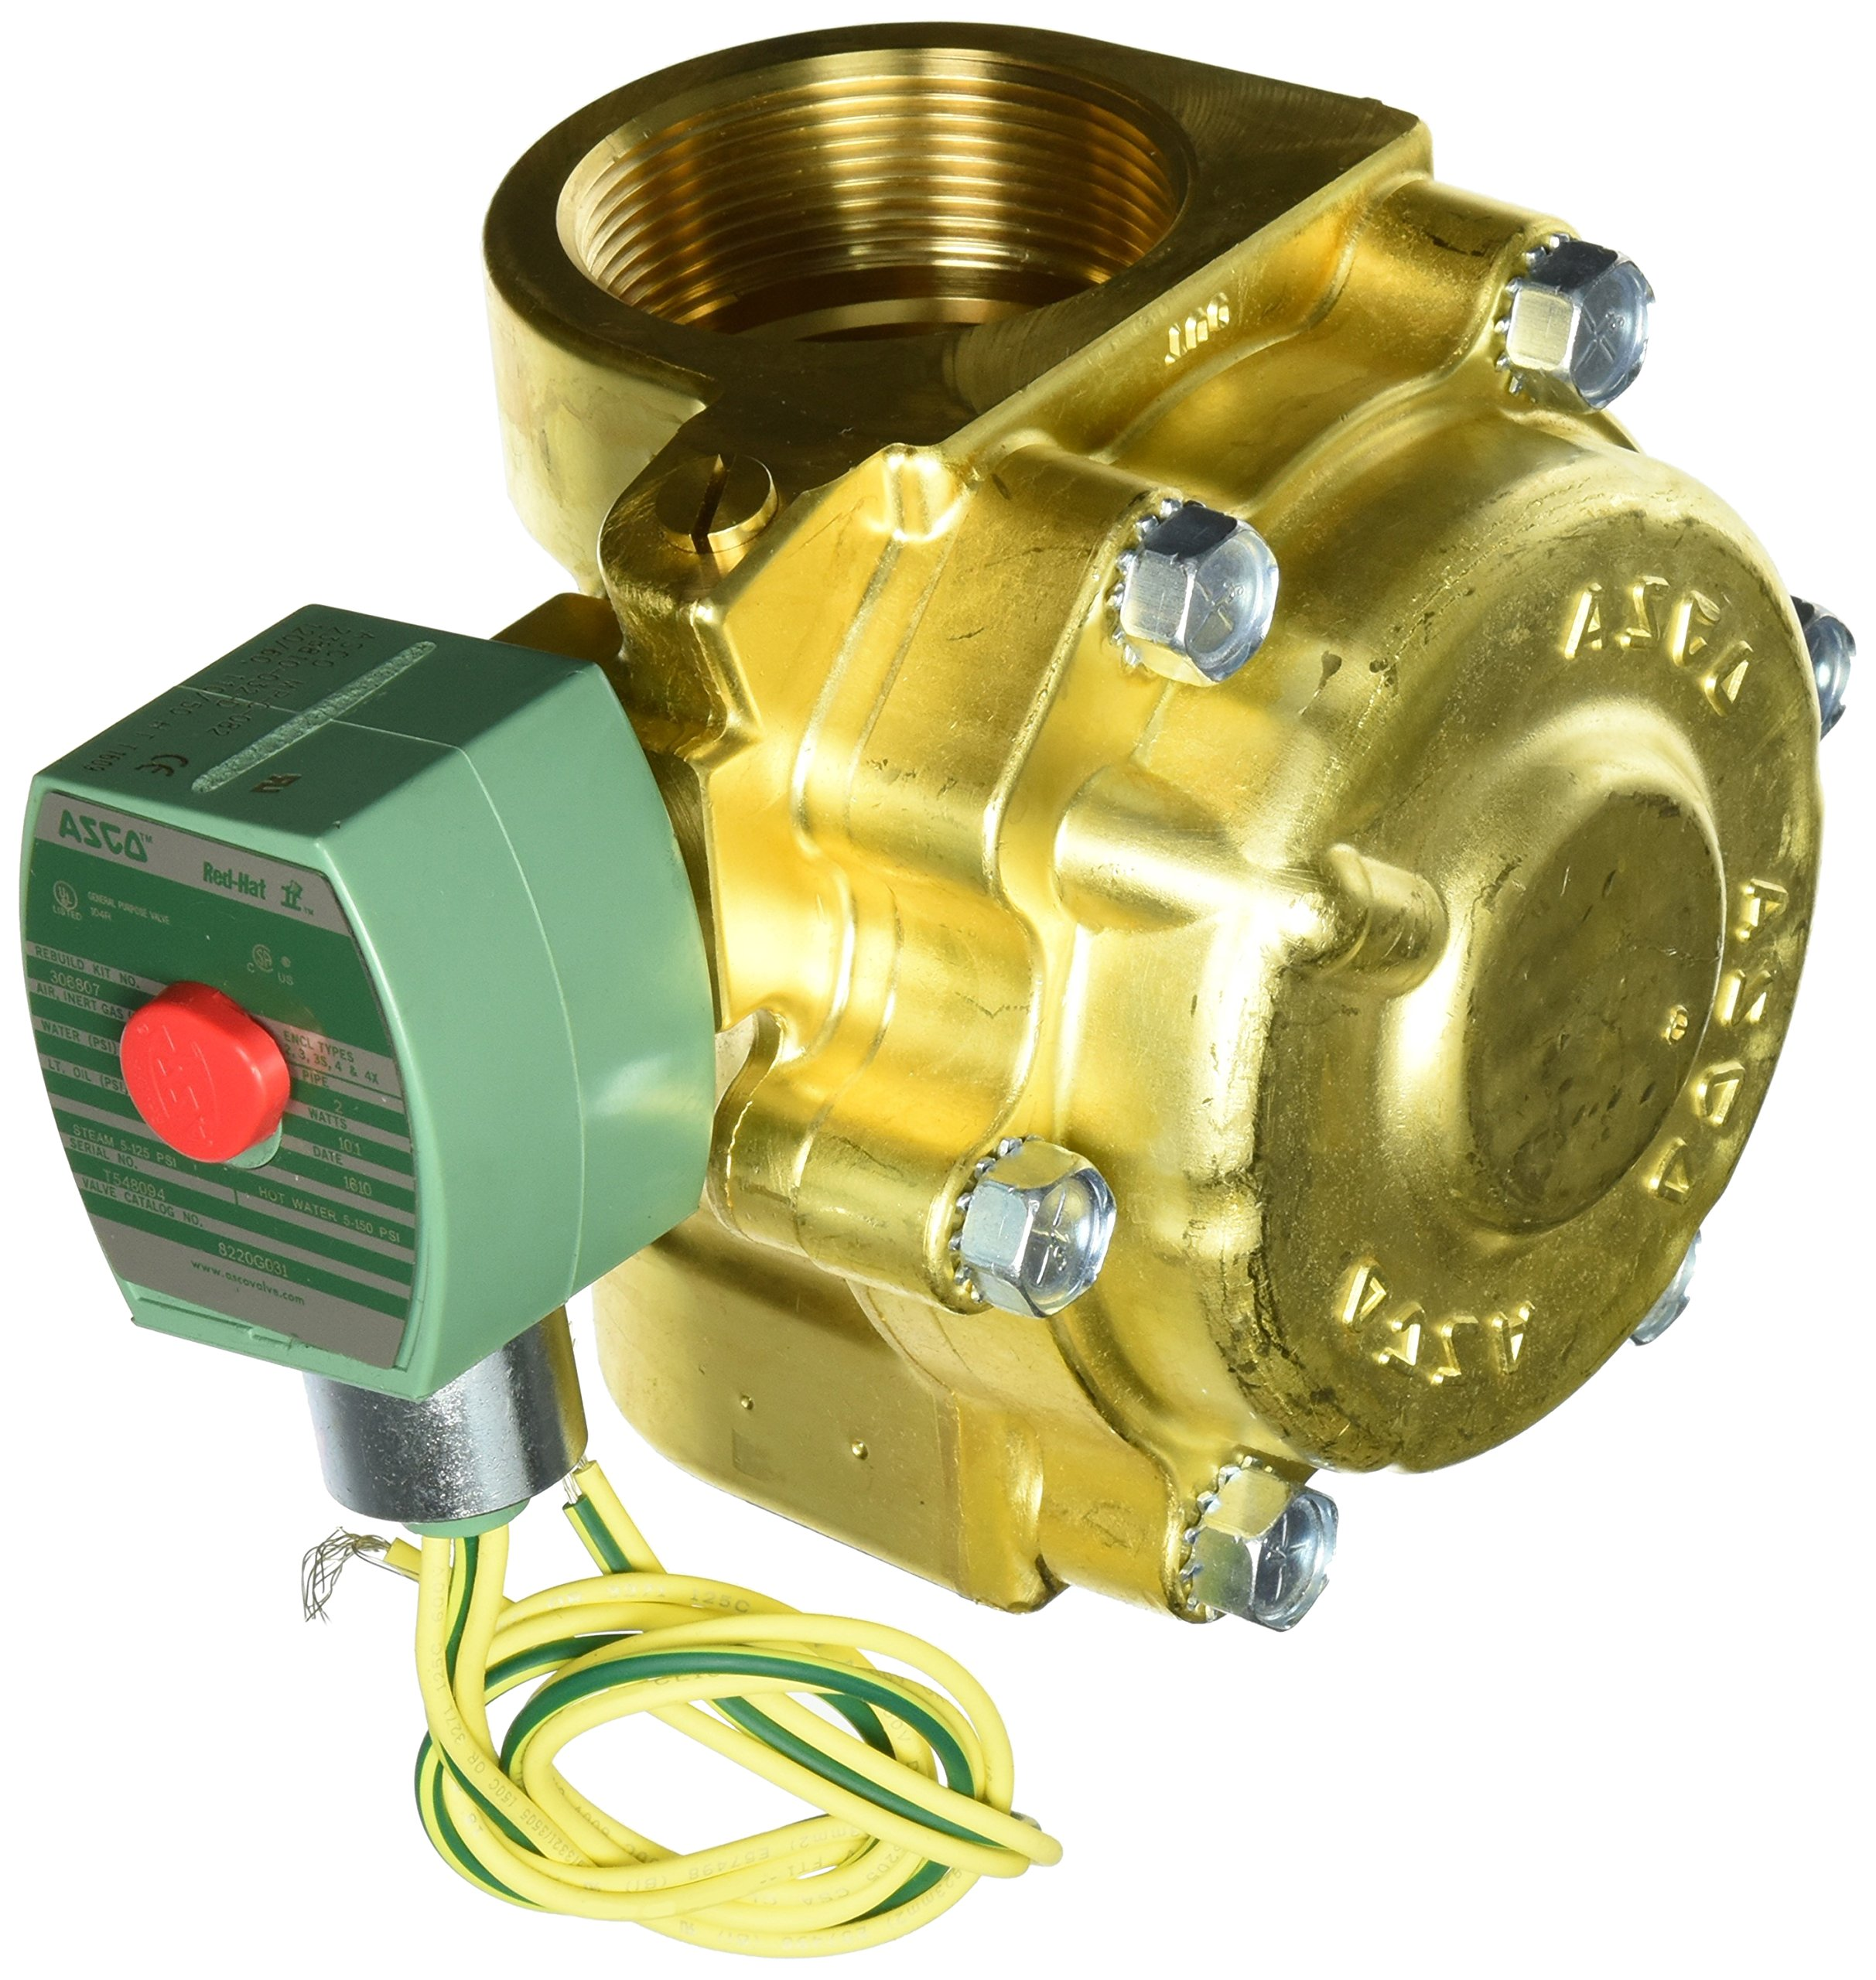 ASCO 8220G031 -120/60,110/50 Brass Body Hot Water and Steam Pilot Operated Diaphragm and Piston Valve, 2'' Pipe Size, 2-Way Normally Closed, PTFE Sealing, 1-3/4'' Orifice, 43 Cv Flow 120V/60 Hz, 110V/50